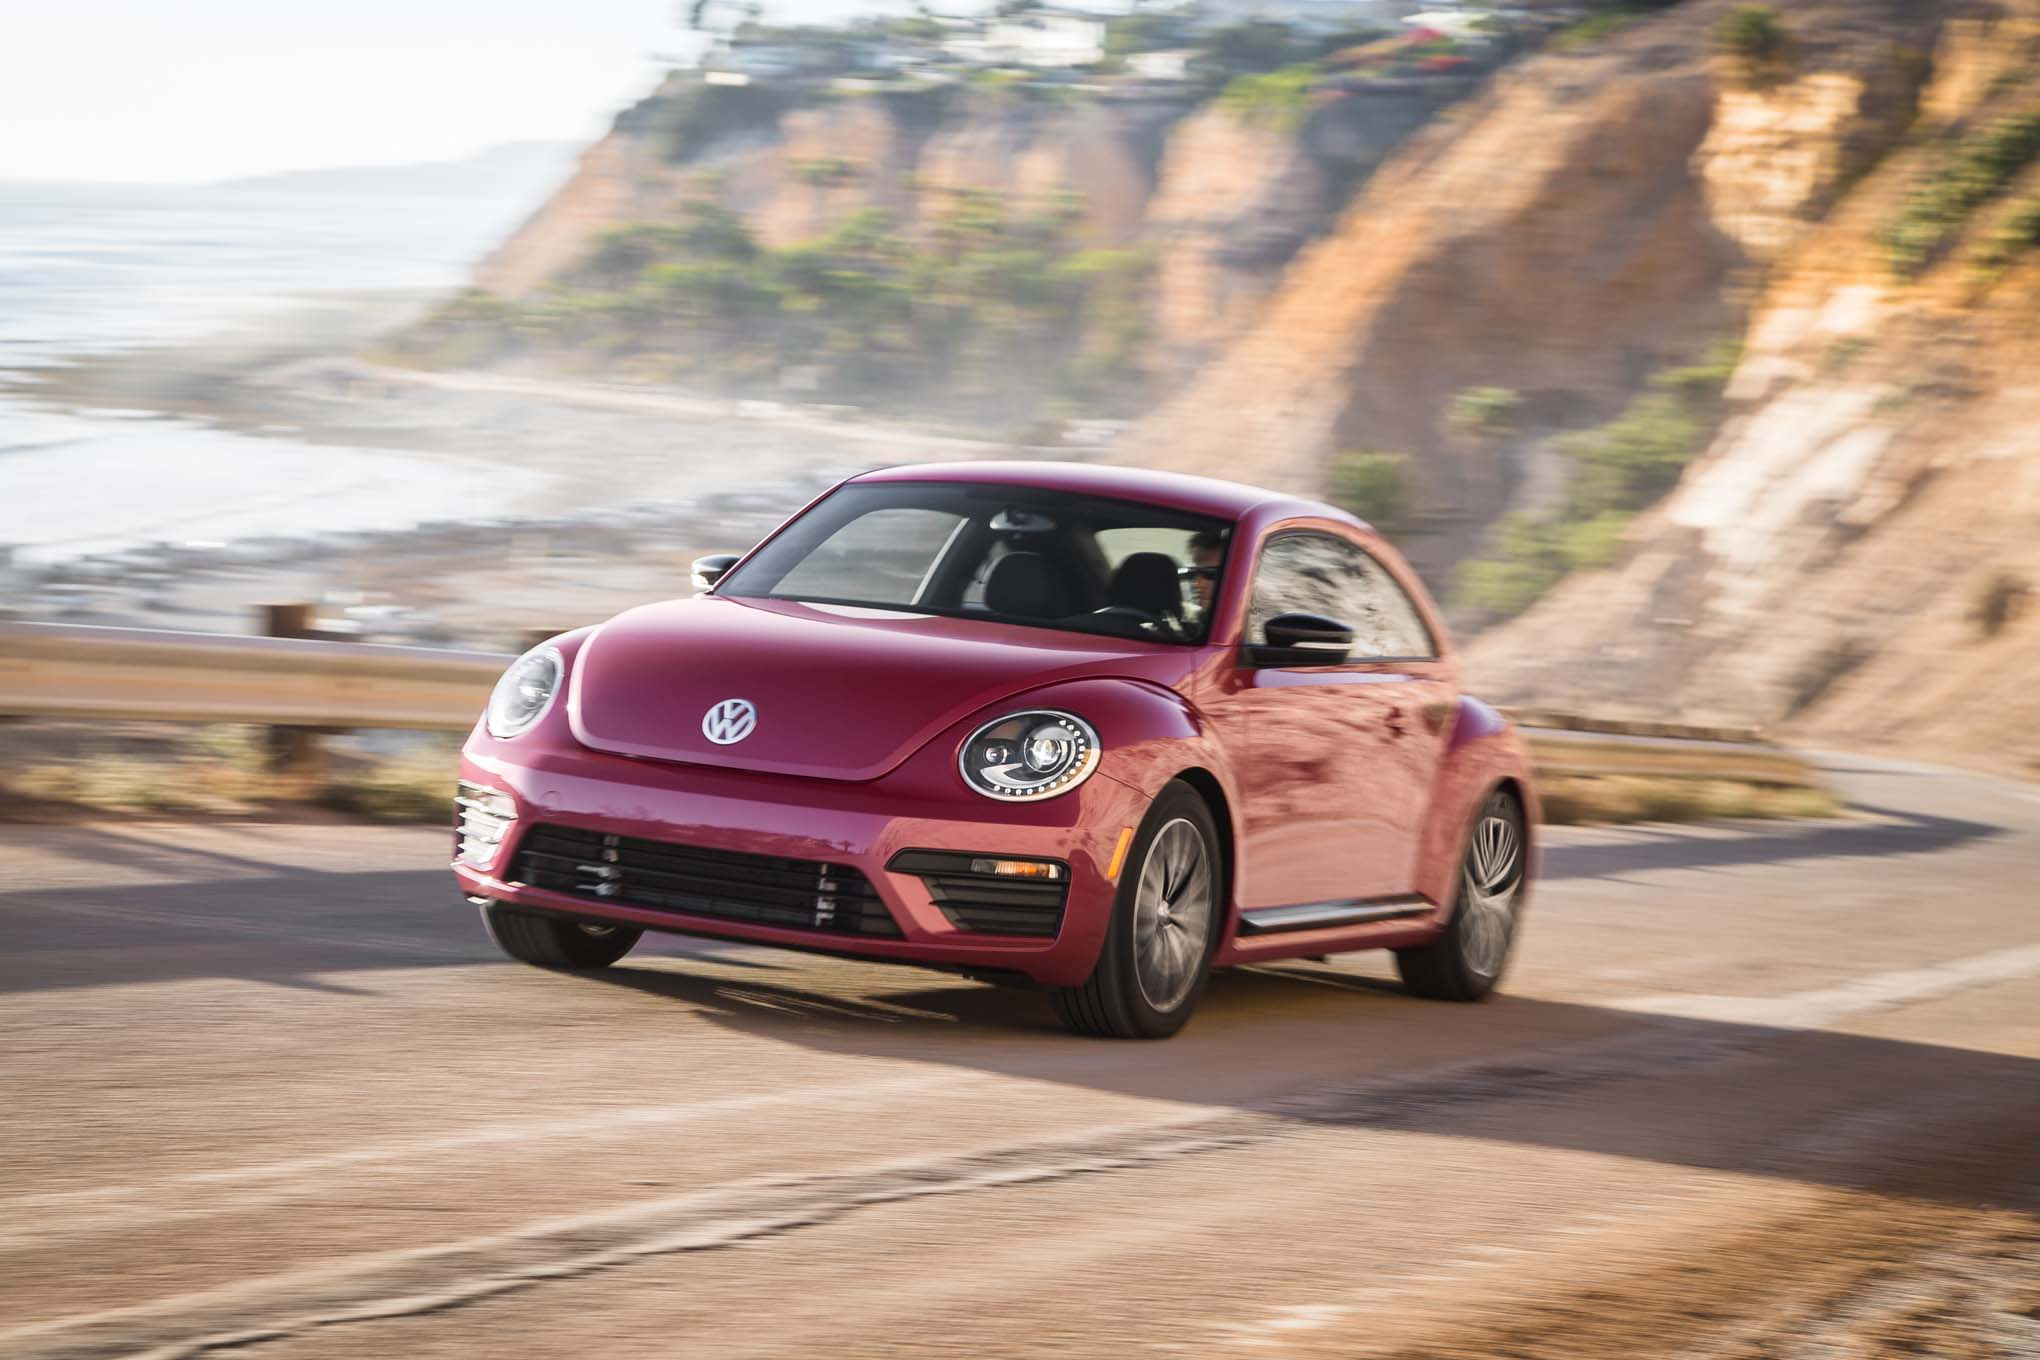 2017 Volkswagen PinkBeetle front three quarter in motion 03